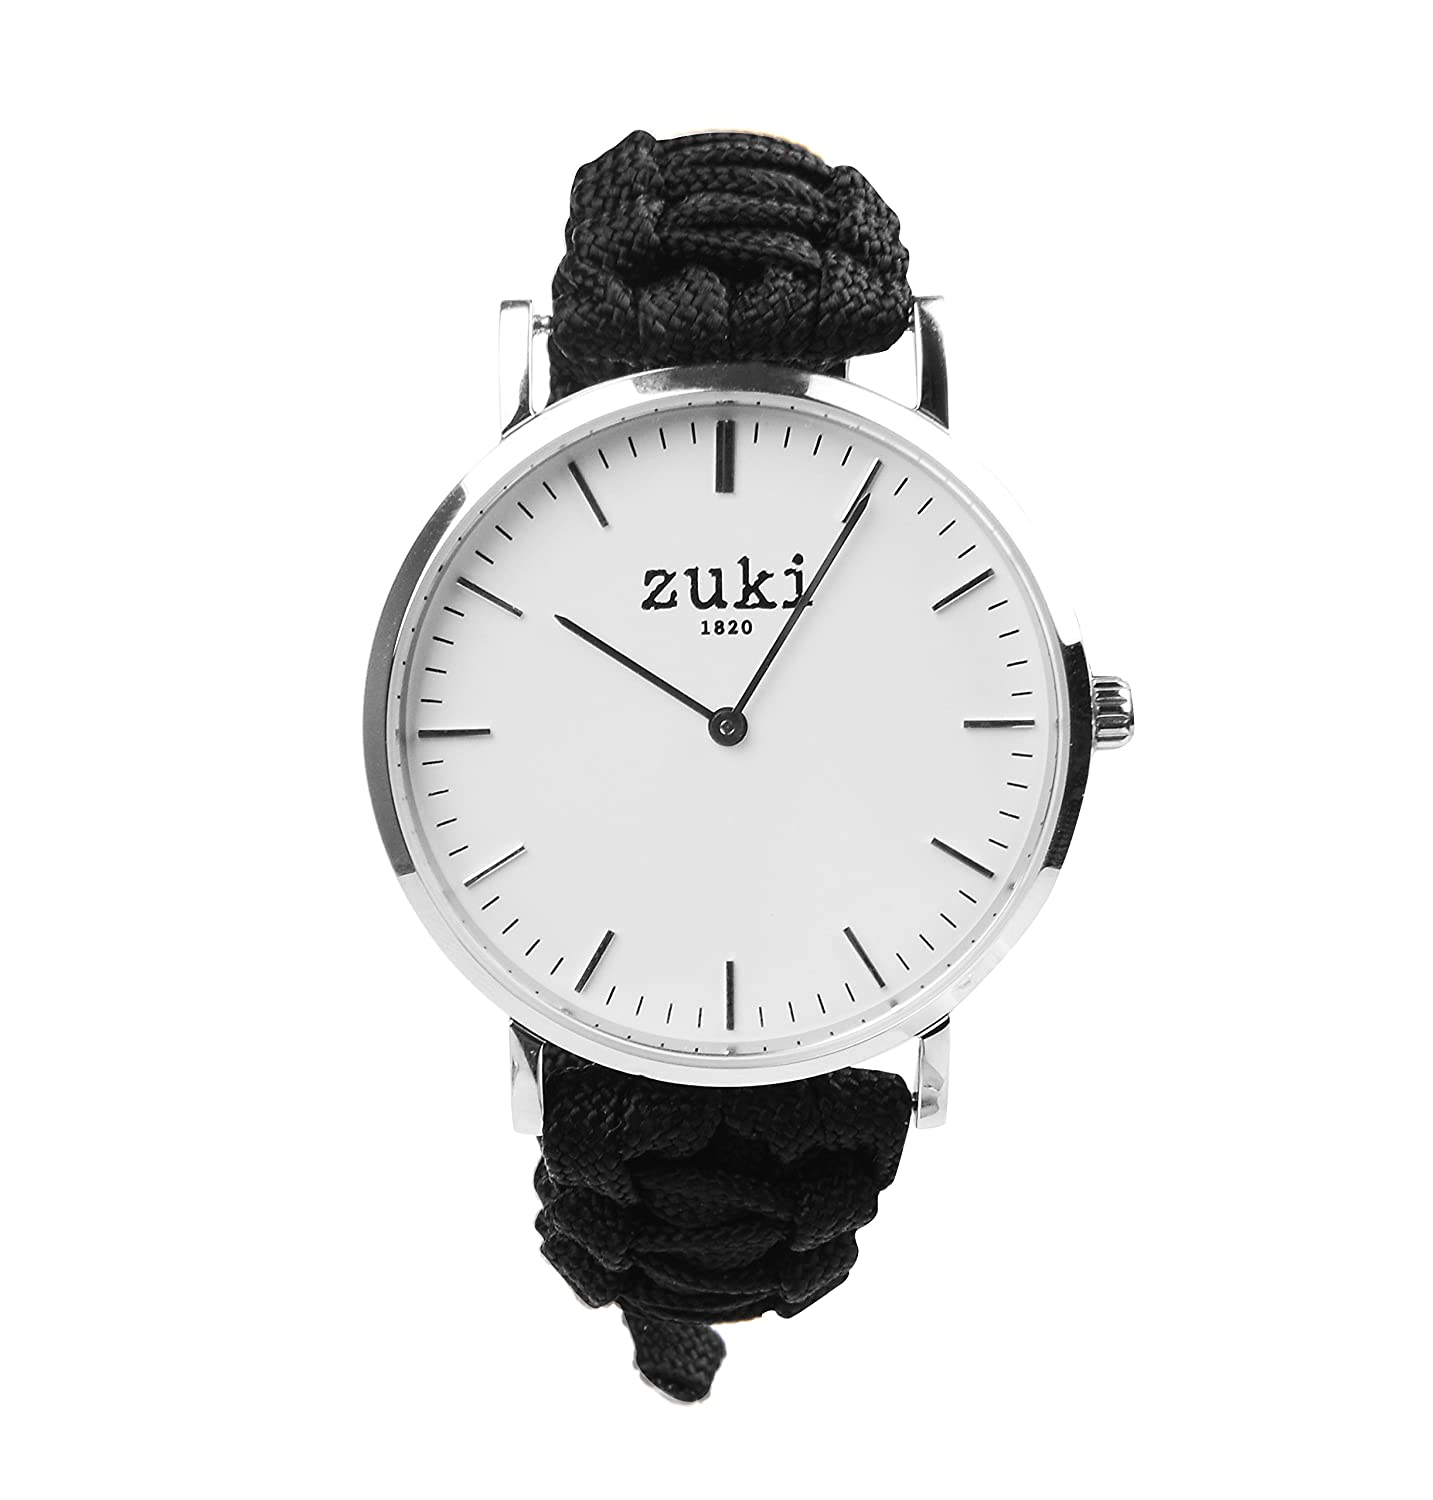 Paracord Watch with Handcrafted Black Bracelet Band Swiss Quartz Movement Men s and Women s Casual and Fashion Wristwatch Brushed Silver with White By zuki